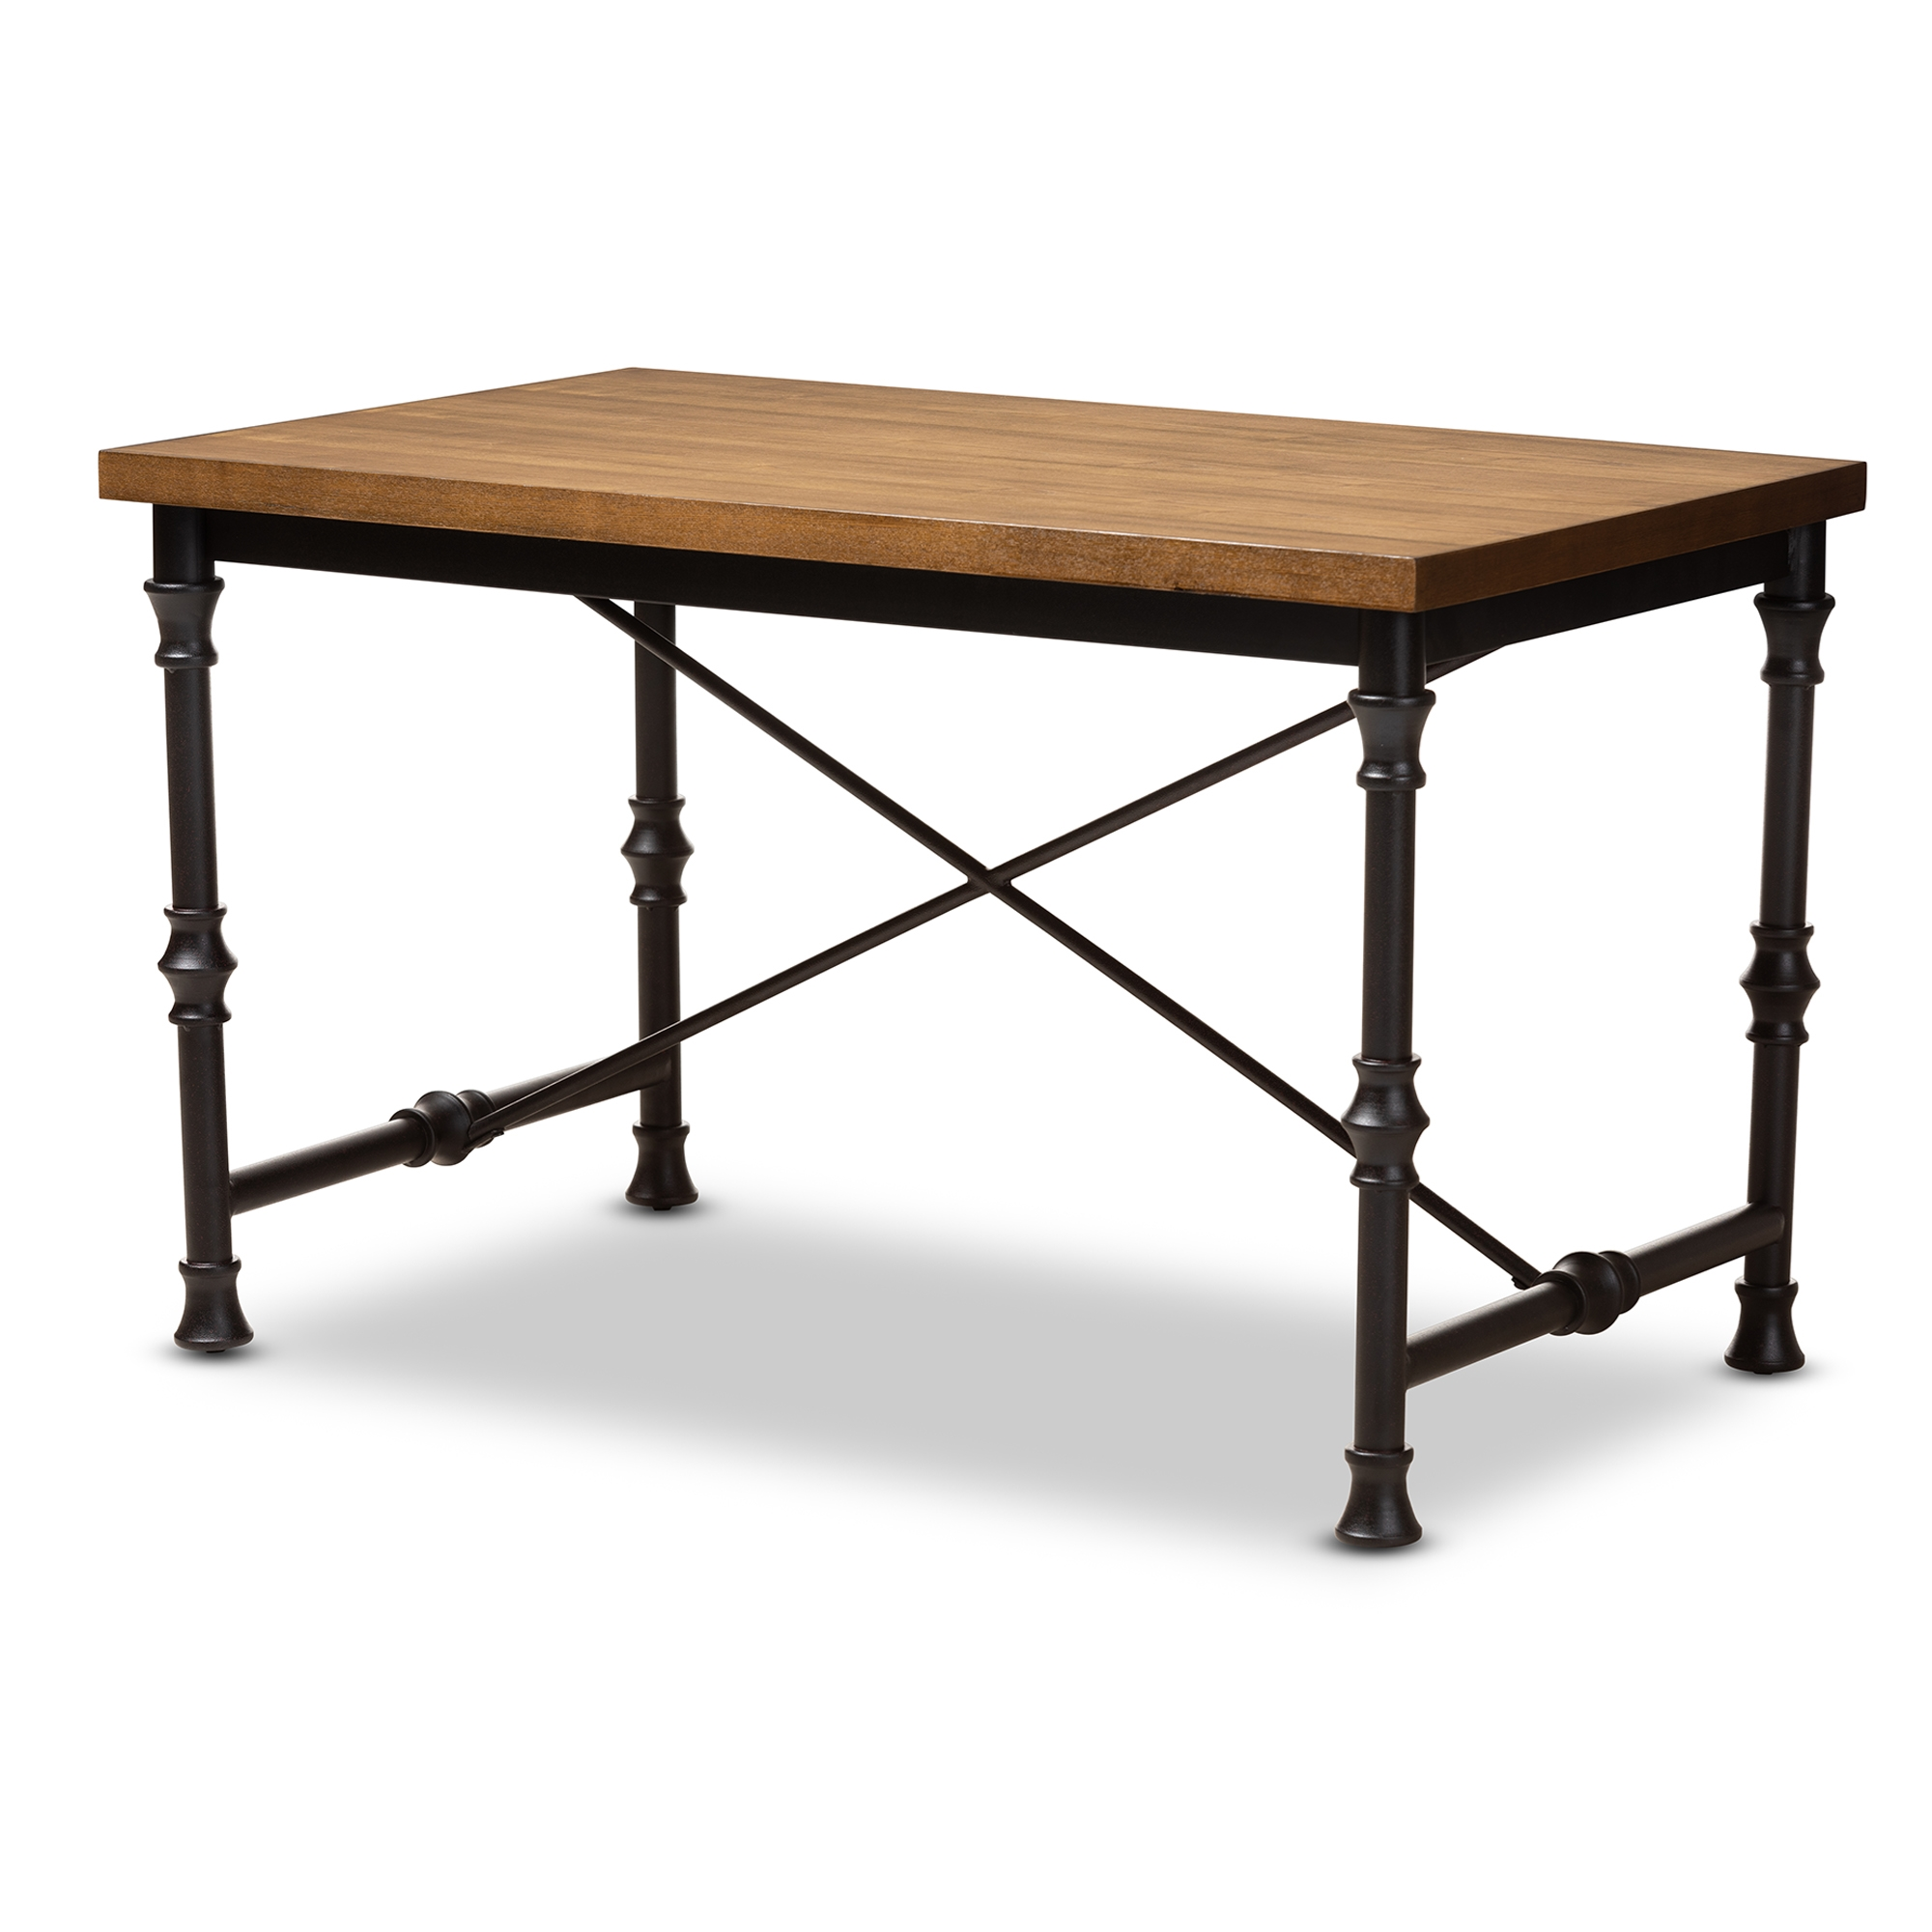 Baxton Studio Verdin Vintage Rustic Industrial Style Wood and Dark Bronze-finished Criss Cross Desk